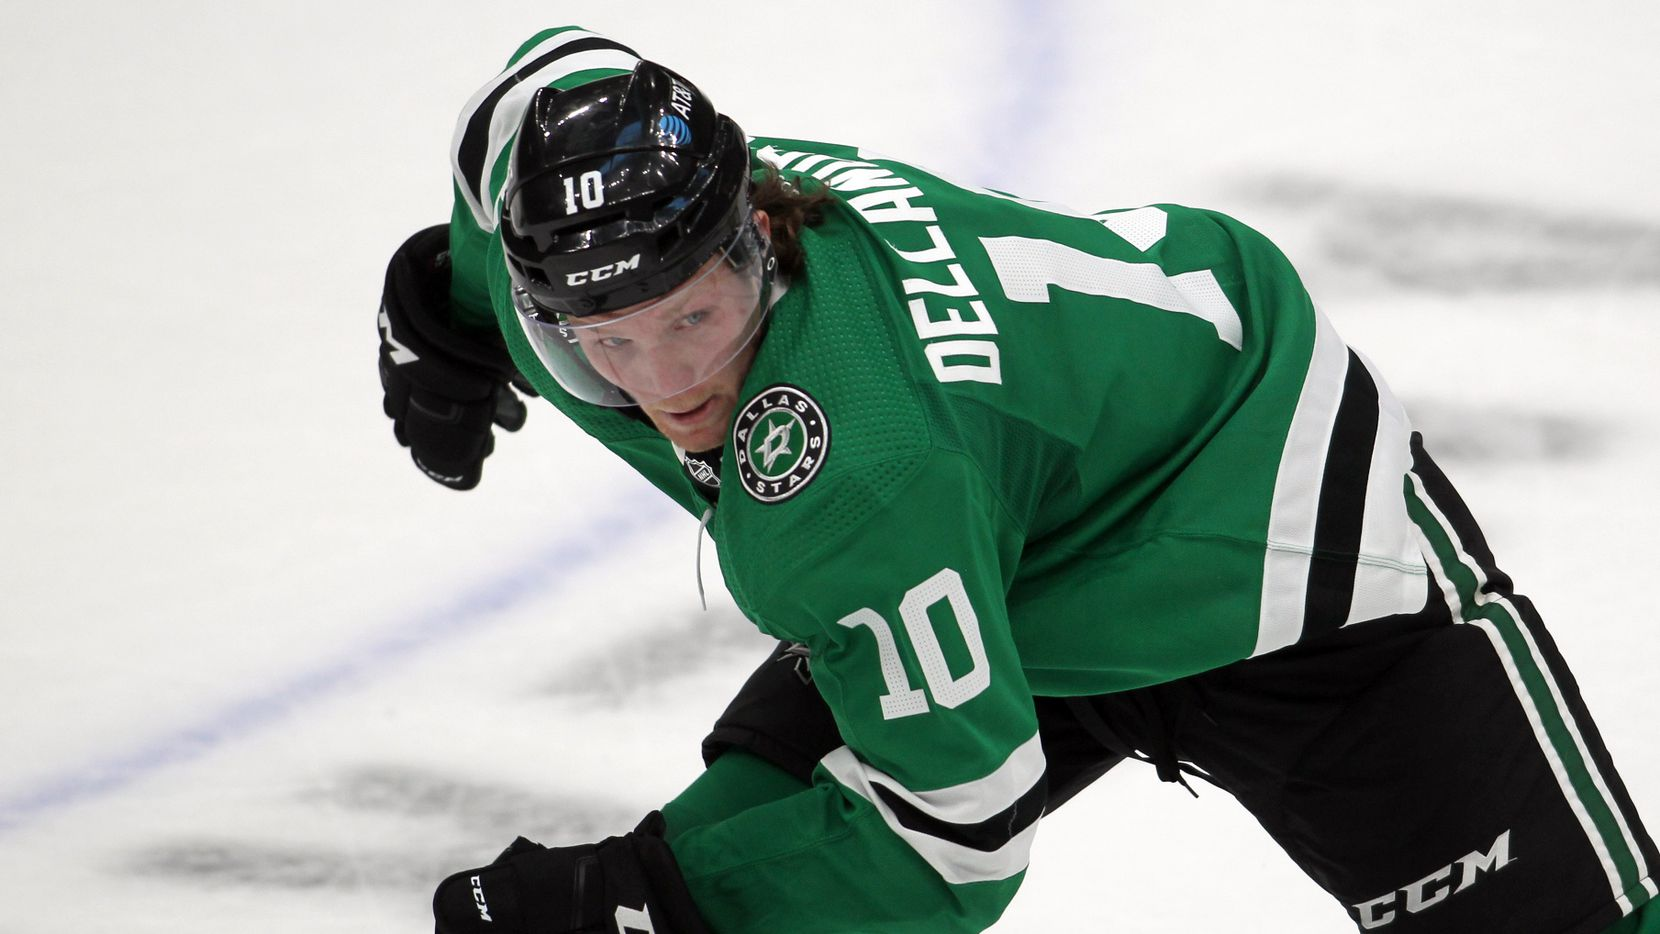 Dallas Stars forward Ty Dellandrea (10) hustles as he follows the puck during the 2nd period of their game against the Nashville Predators. The Stars prevailed, 3-2.  The two teams played their NHL game at the American Airlines Center in Dallas on January 24, 2021.